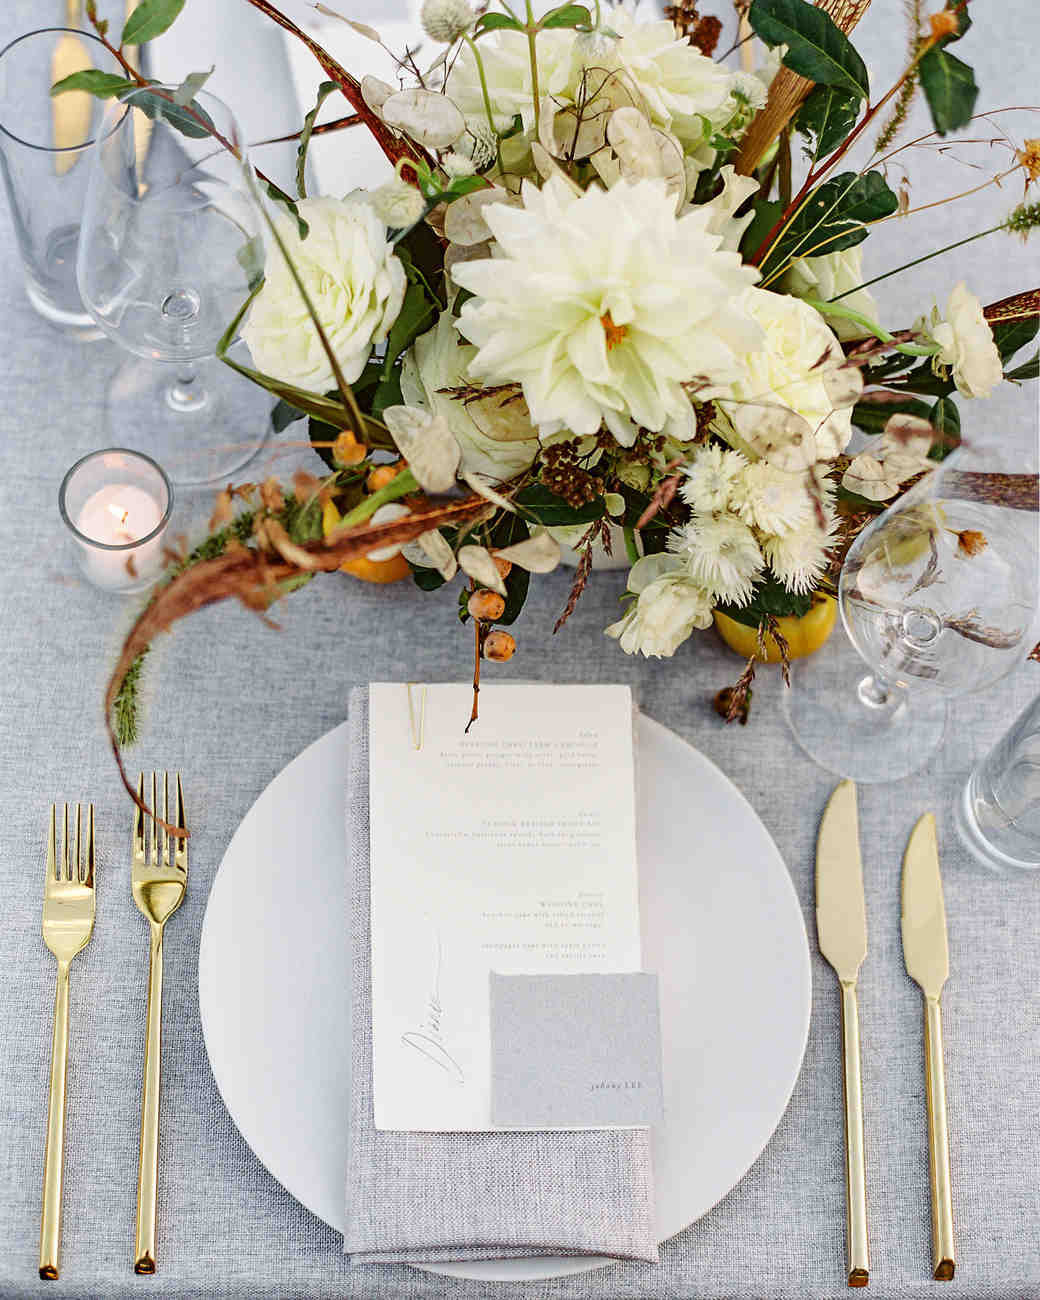 linda robert wedding place setting